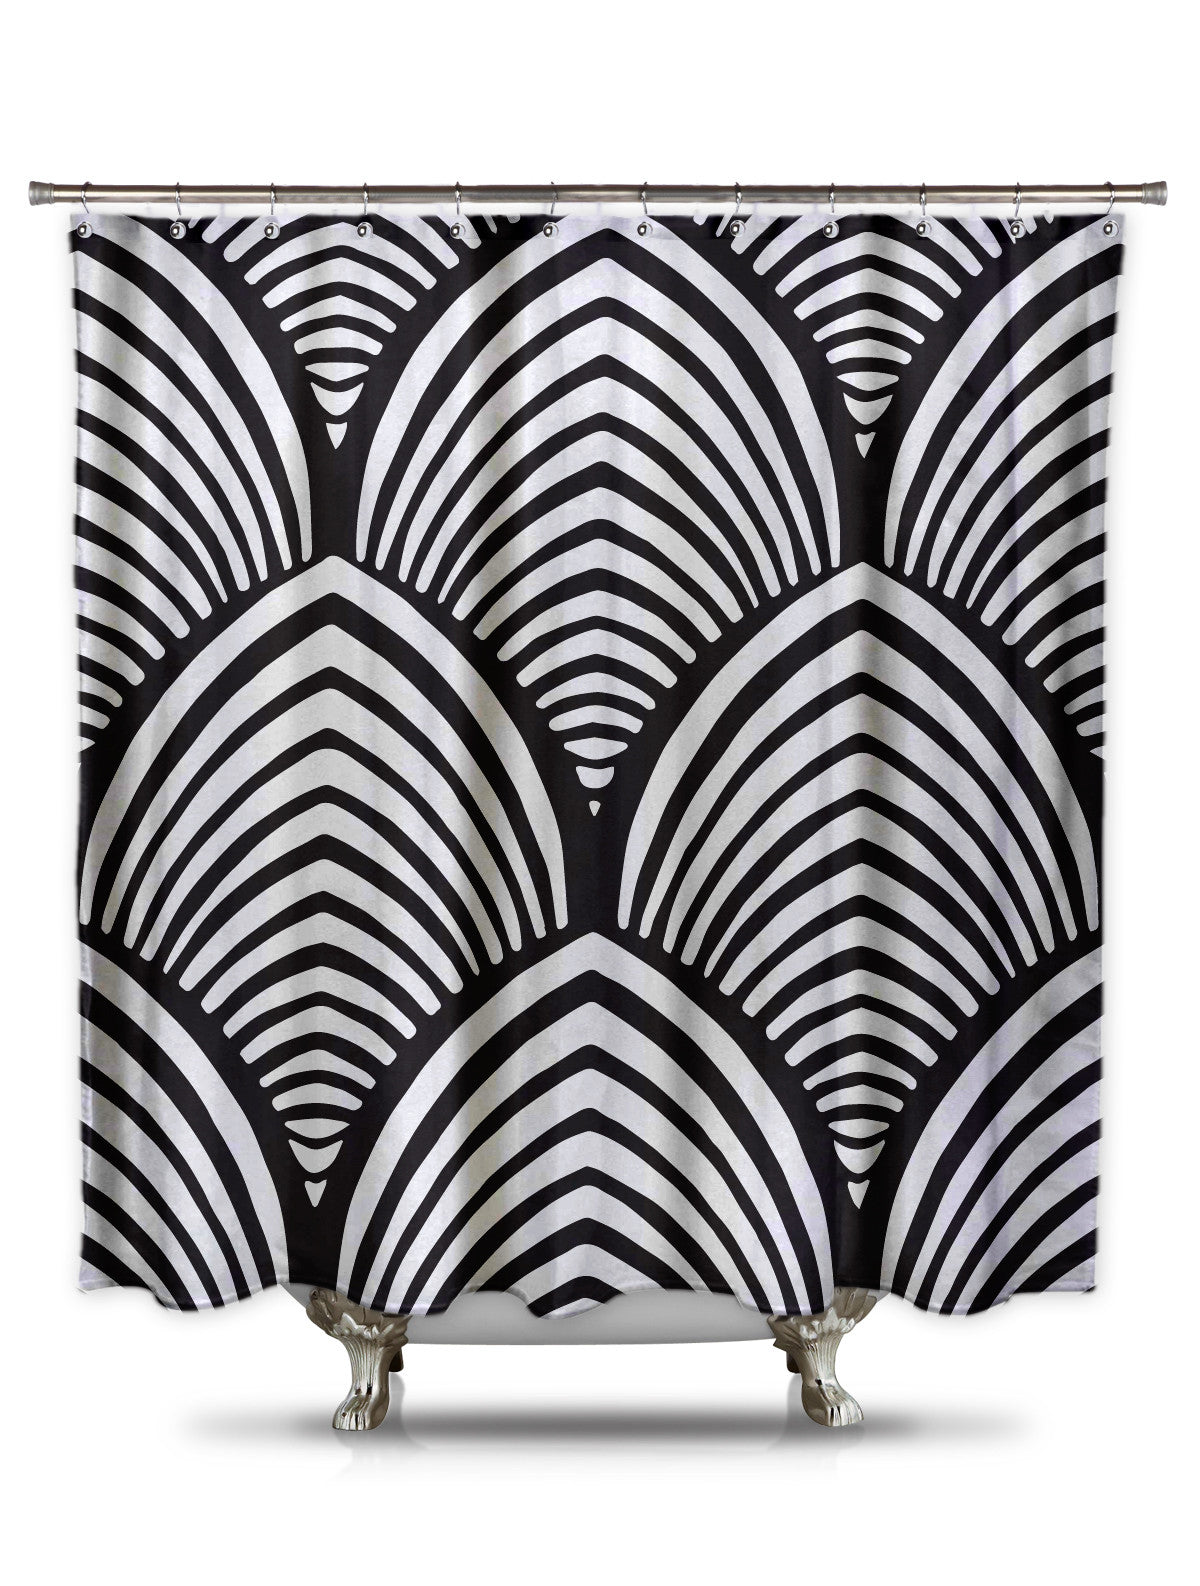 Black and White Shell Pattern Shower Curtain-EXTRA LONG-Adult Coloring Book Series